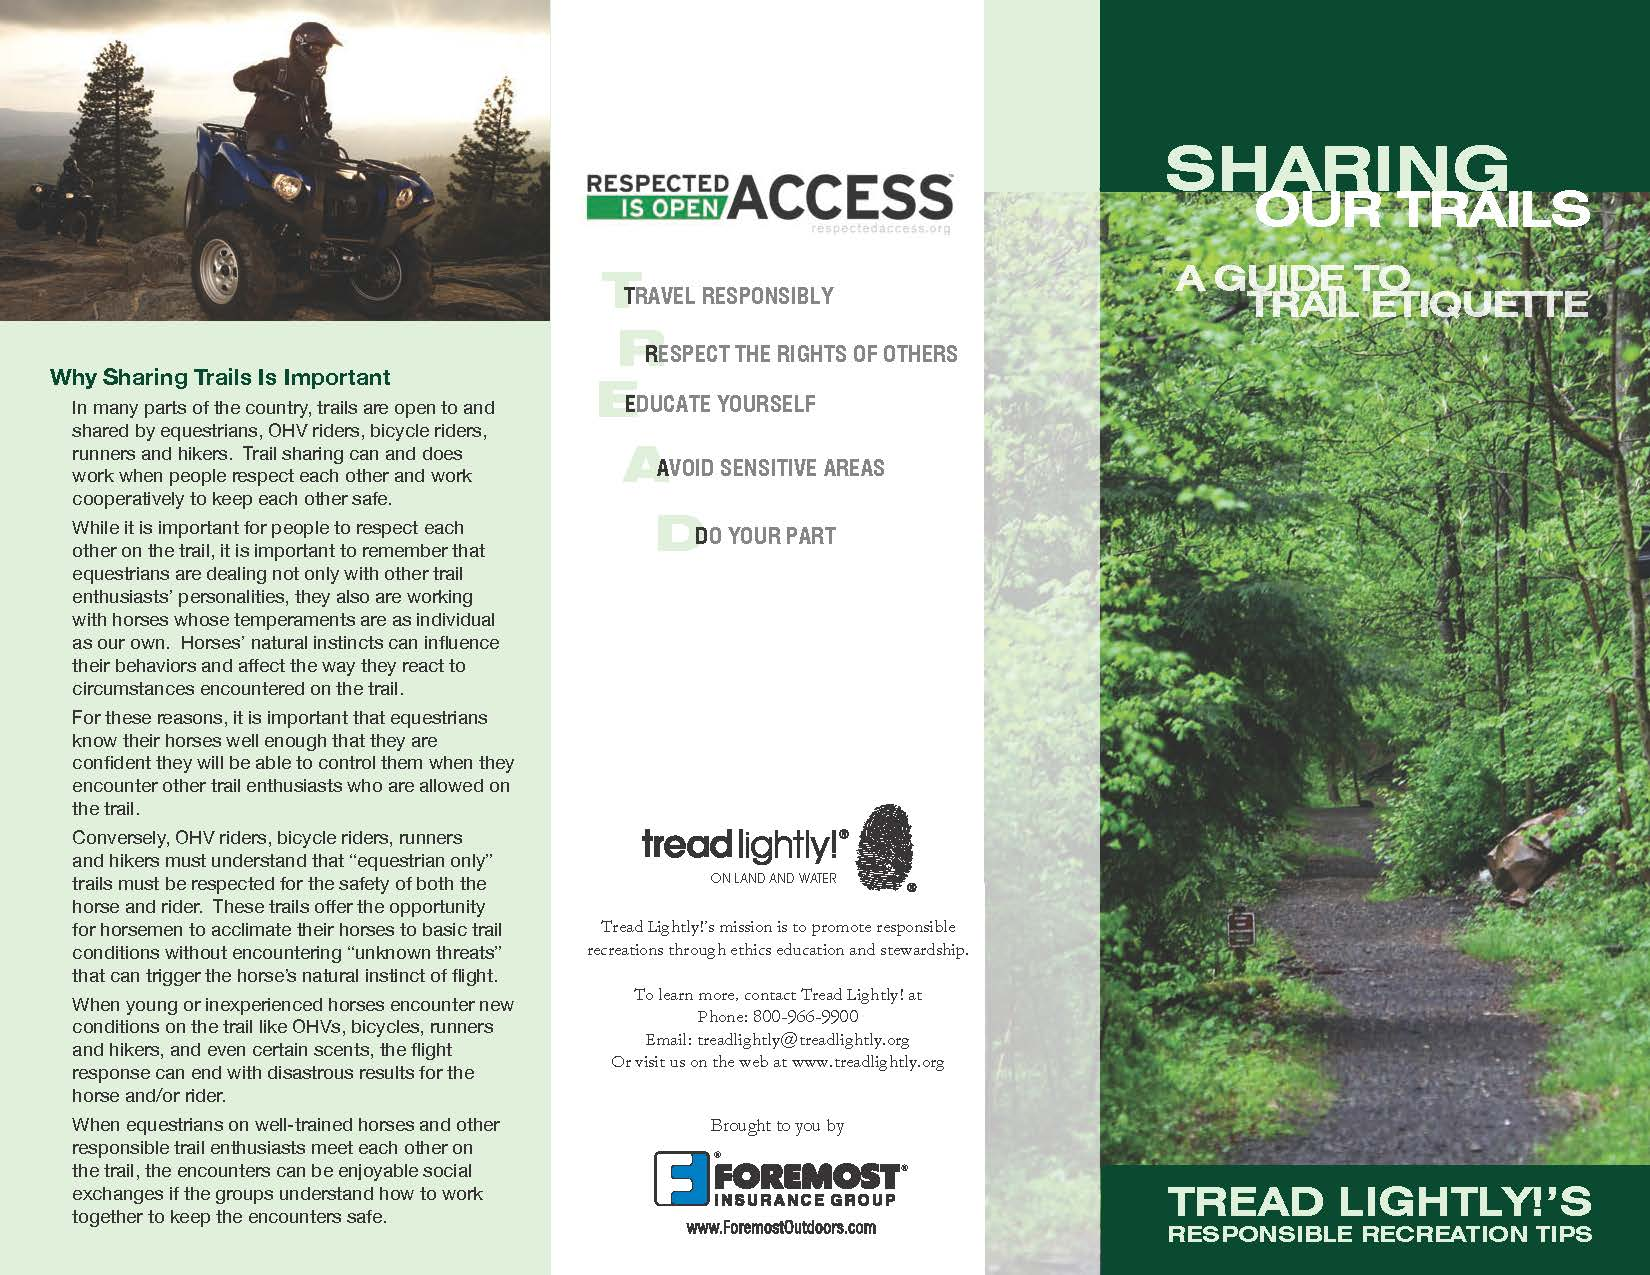 Thread Lightly on roads and water informational flyer